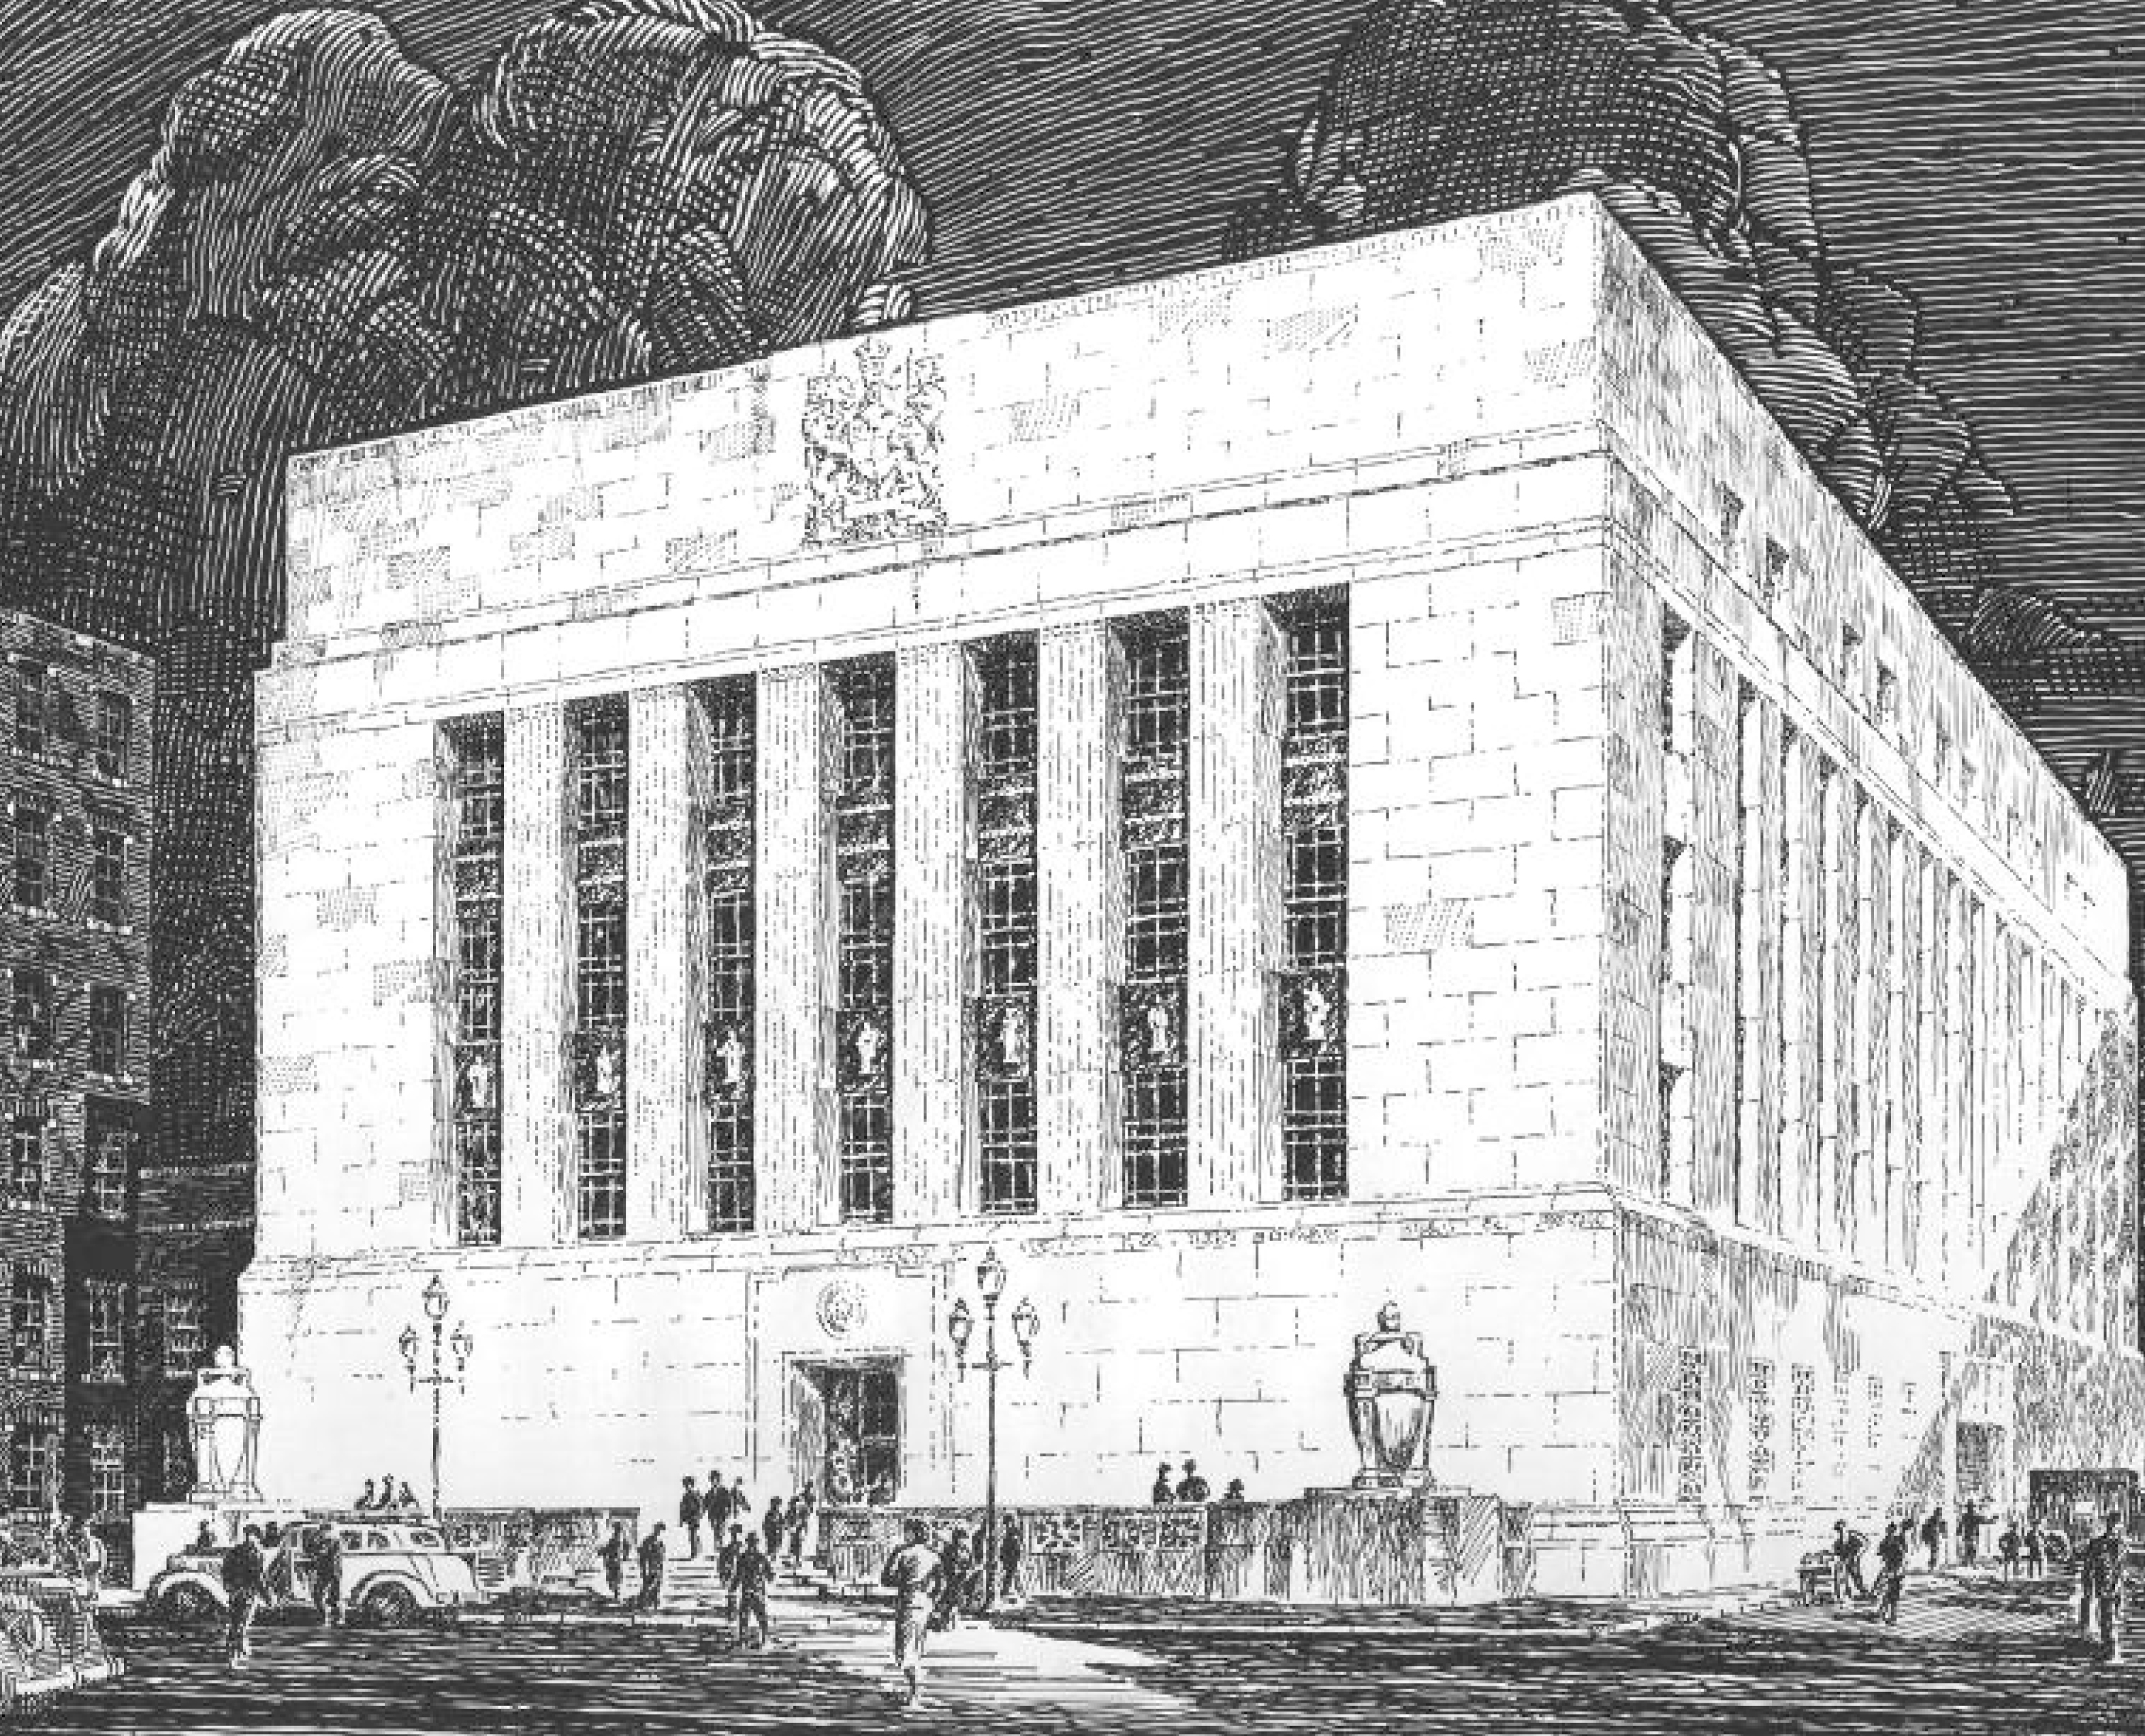 Proposed 1937 design by Marani, Lawson & Morris and S.G. Davenport, Associated Architects